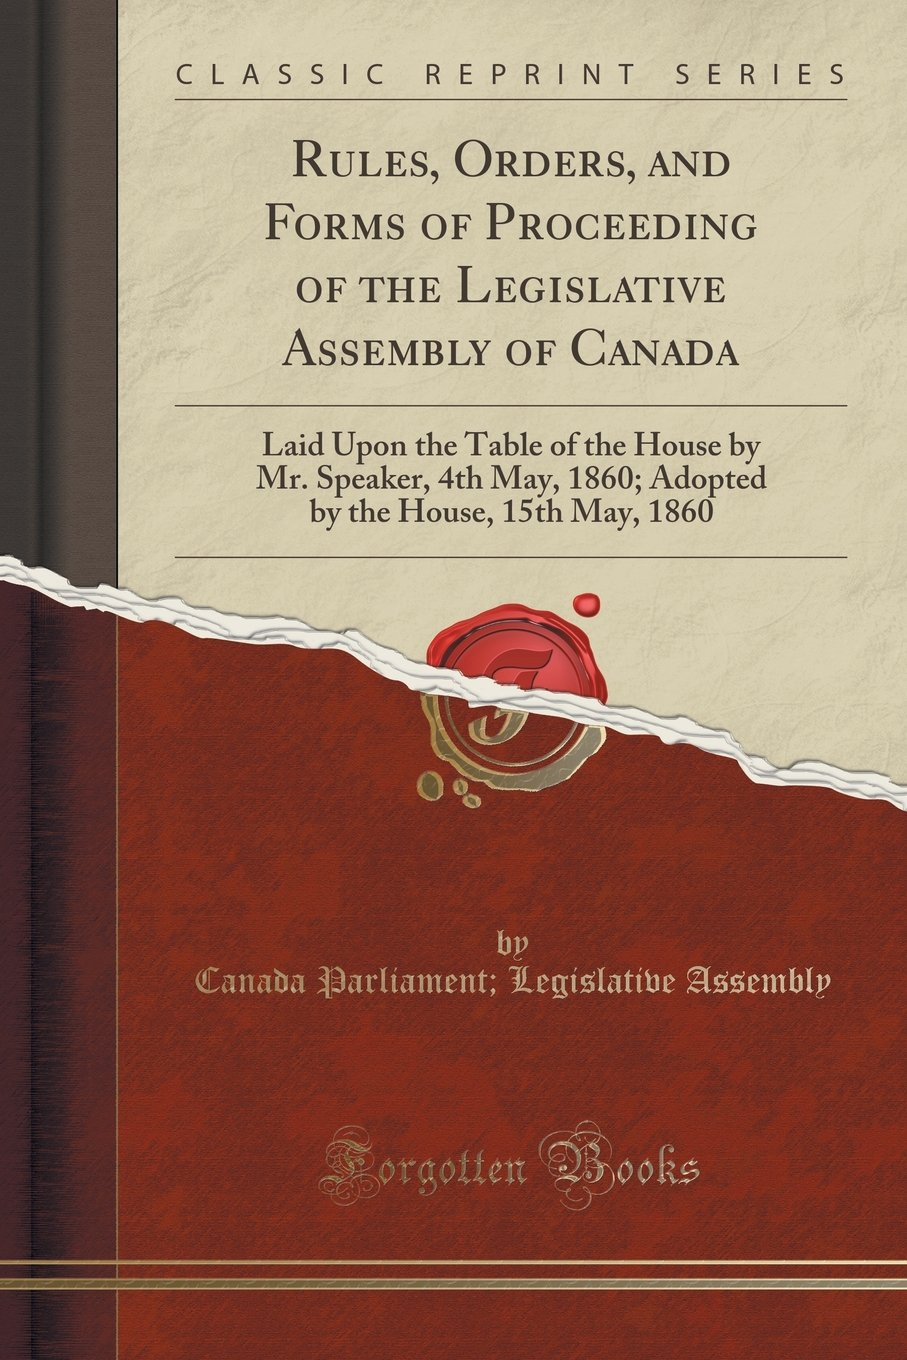 Download Rules, Orders, and Forms of Proceeding of the Legislative Assembly of Canada: Laid Upon the Table of the House by Mr. Speaker, 4th May, 1860; Adopted by the House, 15th May, 1860 (Classic Reprint) pdf epub